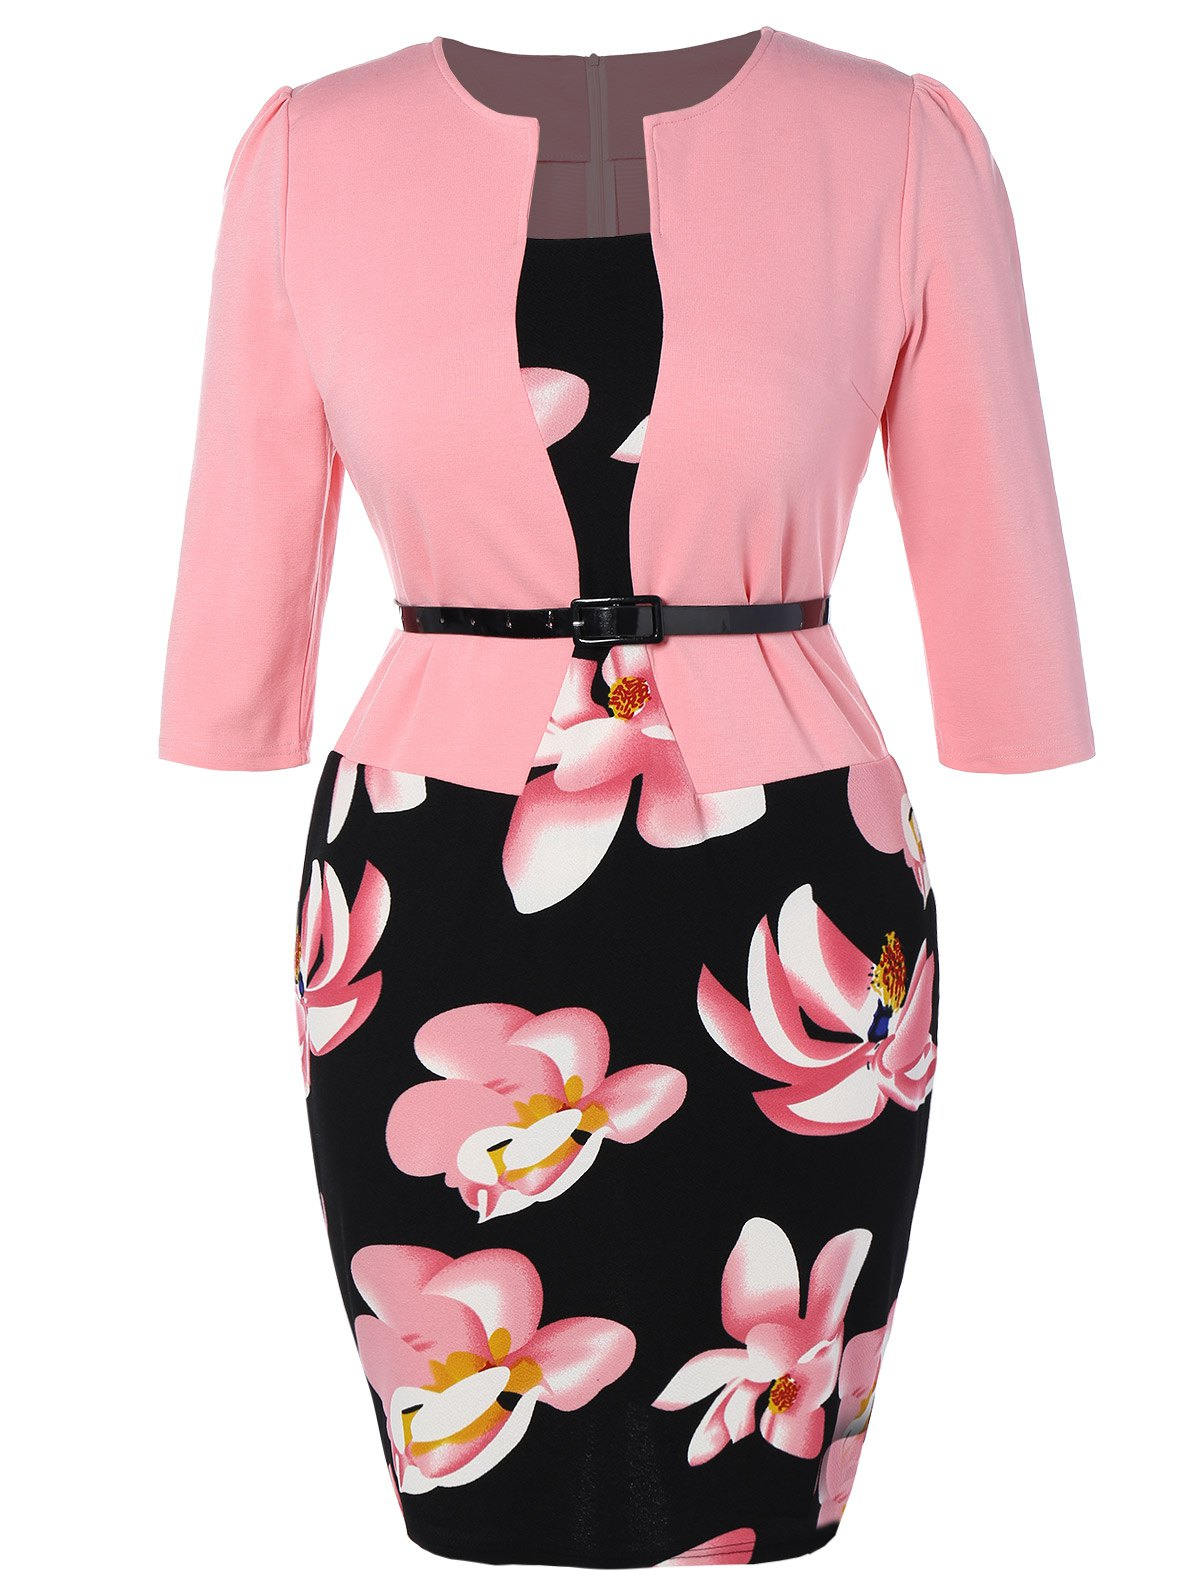 Plus Size Mid Length Pencil Peplum DressWOMEN<br><br>Size: 2XL; Color: PINK; Style: Work; Material: Cotton Blend,Polyester; Silhouette: Sheath; Dresses Length: Mid-Calf; Neckline: Square Collar; Sleeve Length: 3/4 Length Sleeves; Pattern Type: Print; With Belt: Yes; Season: Fall,Spring; Weight: 0.403kg; Package Contents: 1 x Dress  1 x Belt;